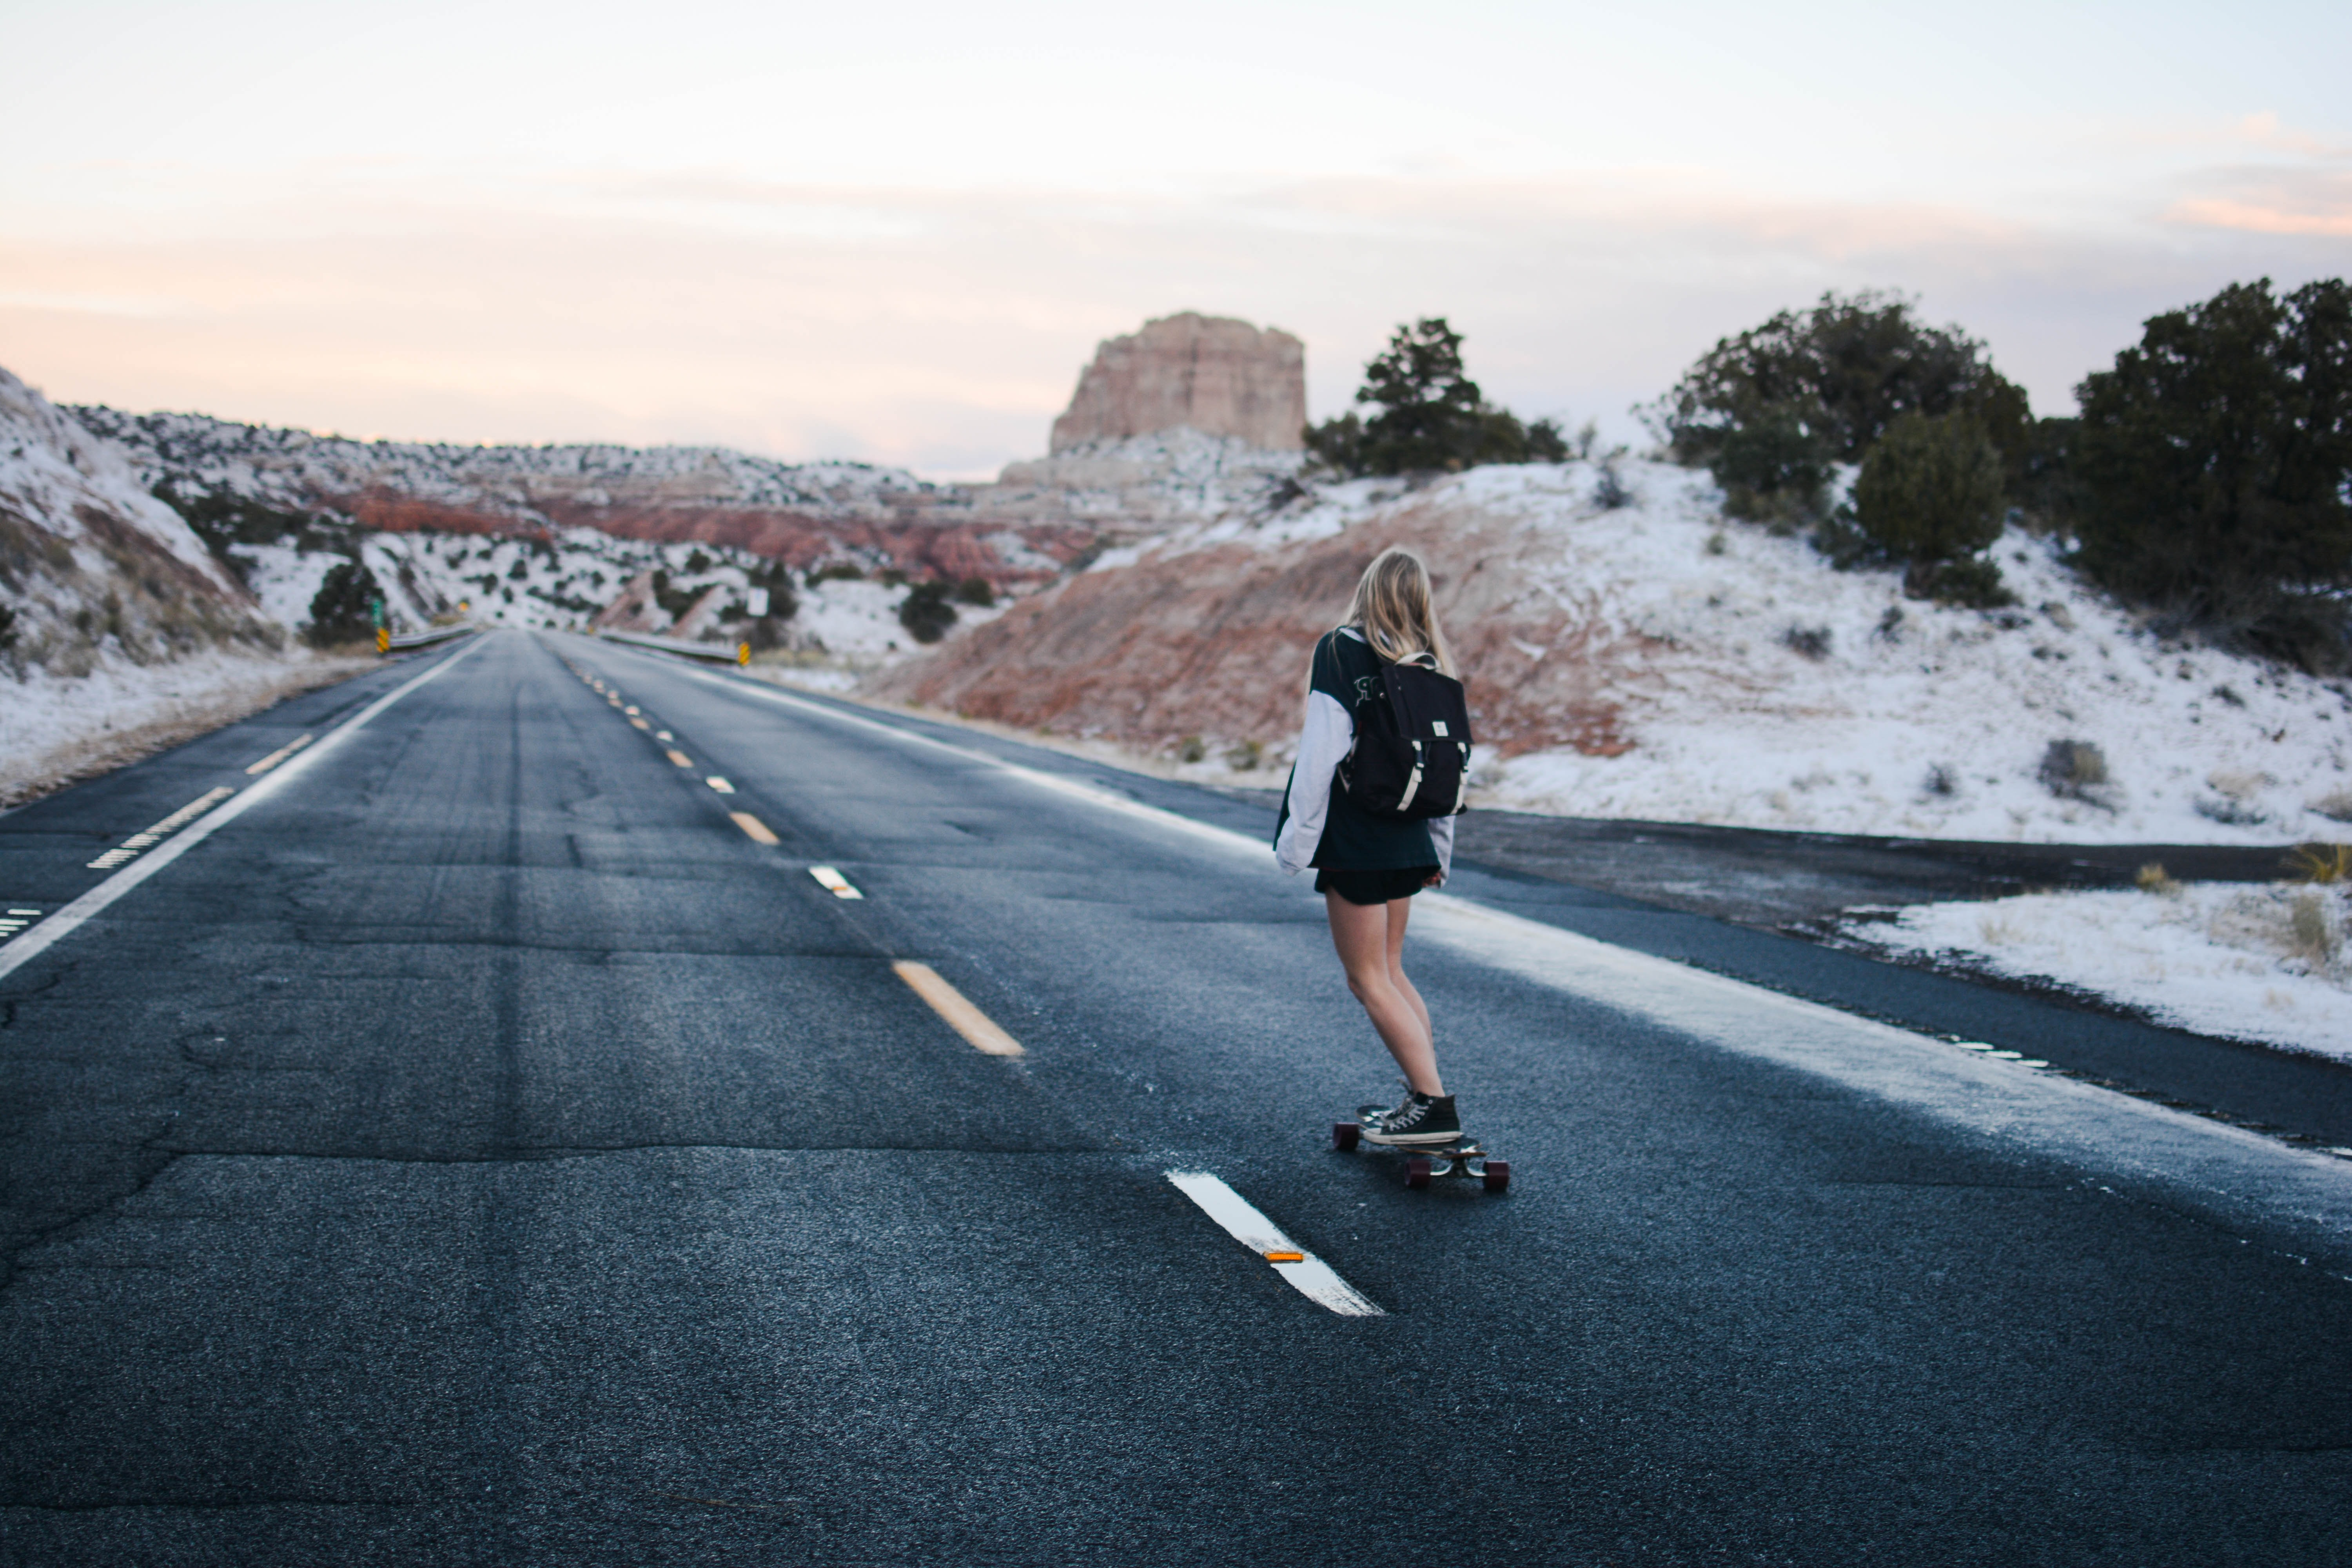 A blonde woman wearing an oversized jacket and backpack skateboarding down a desert road in Page